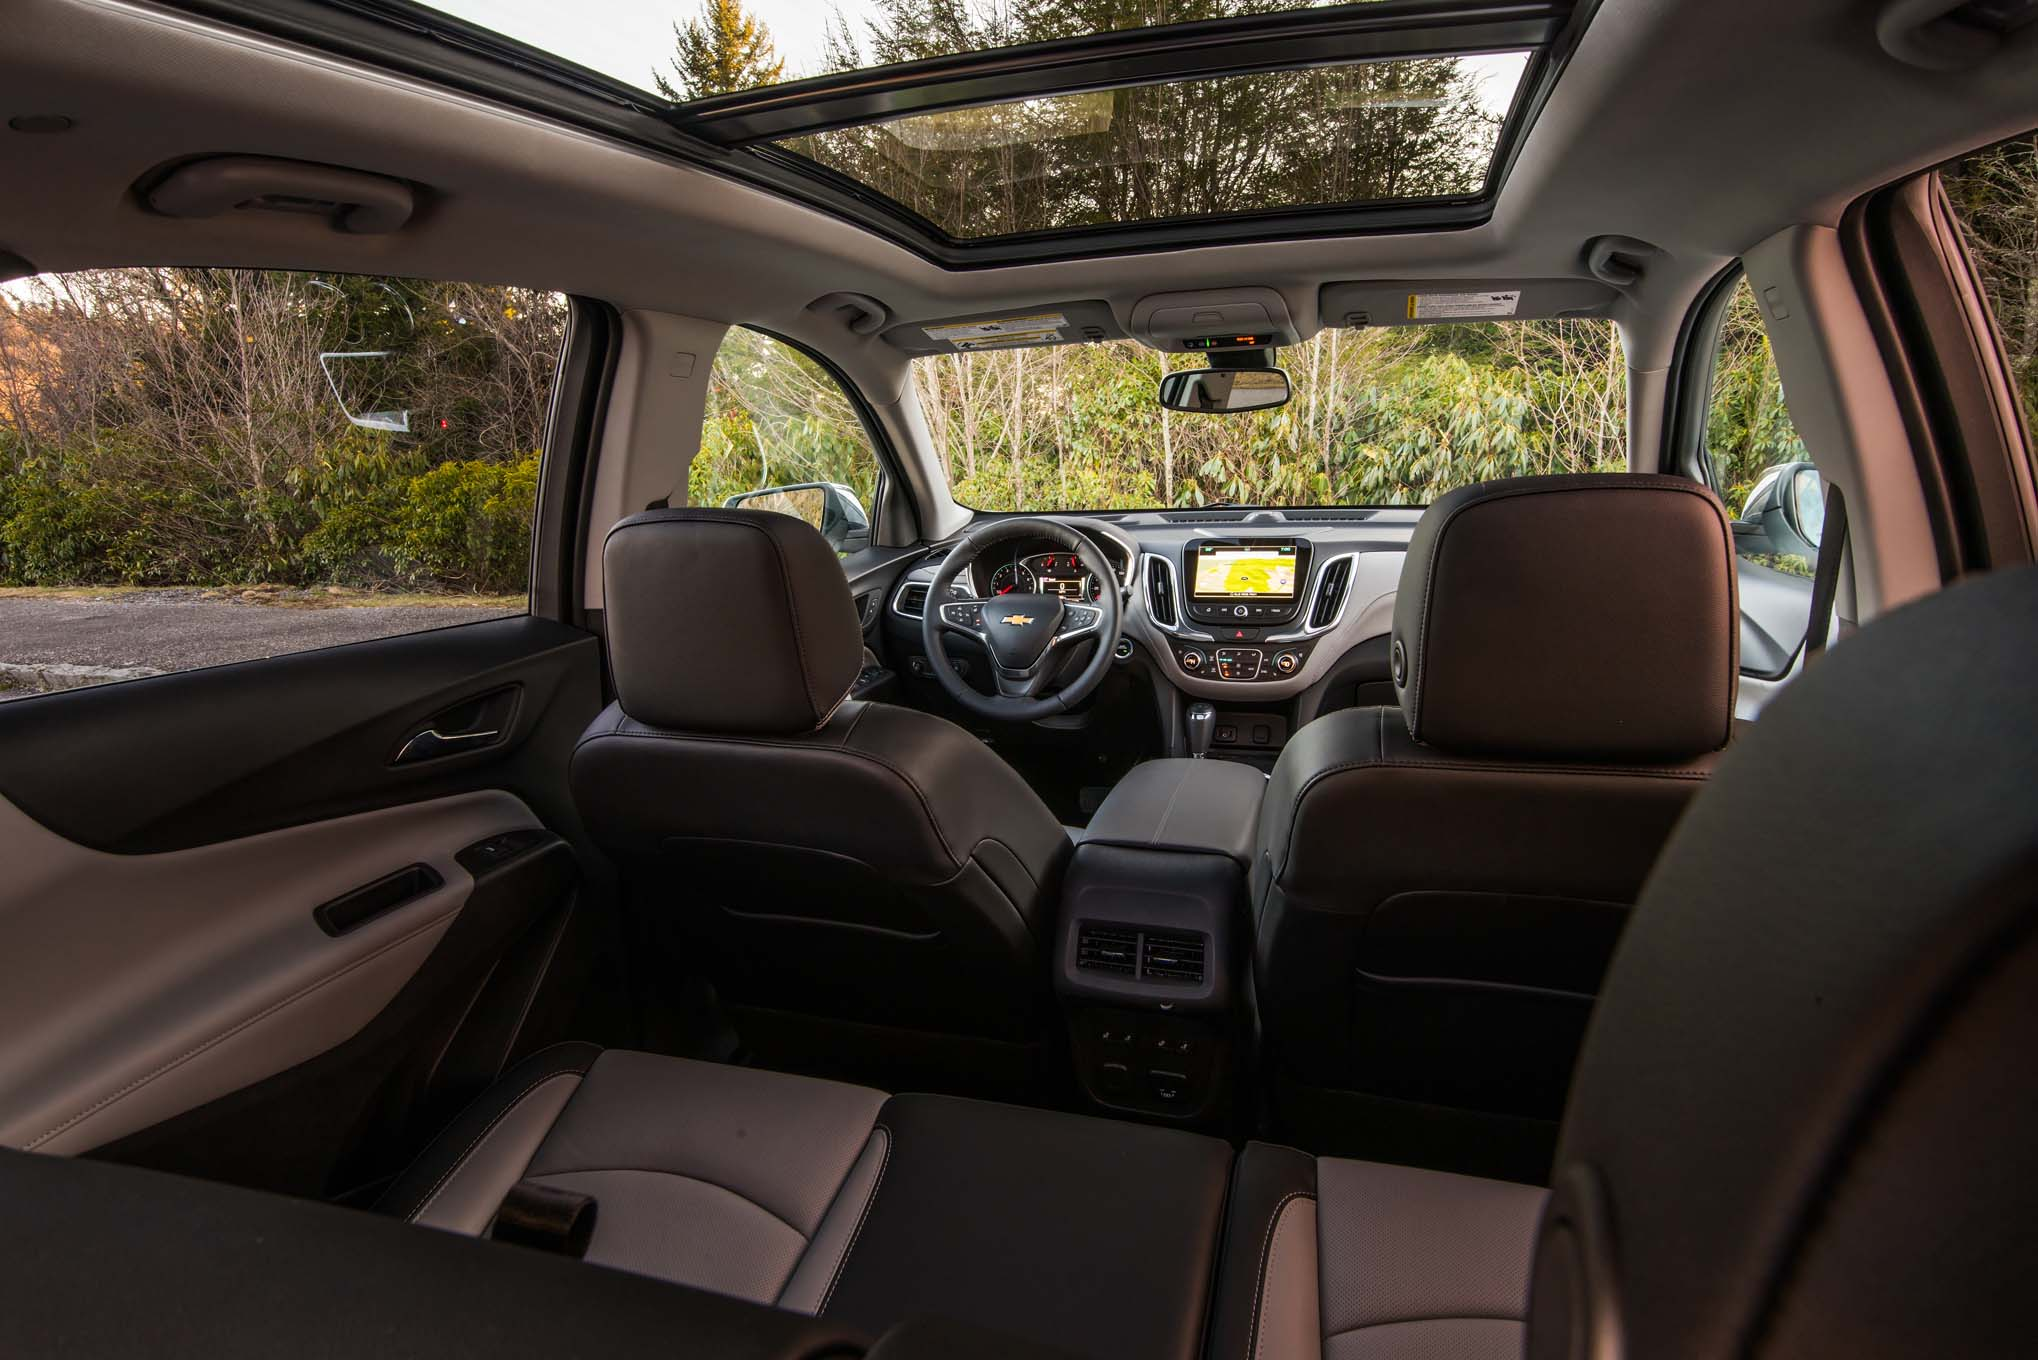 Chevy Equinox Interior Images Best Accessories Home 2018